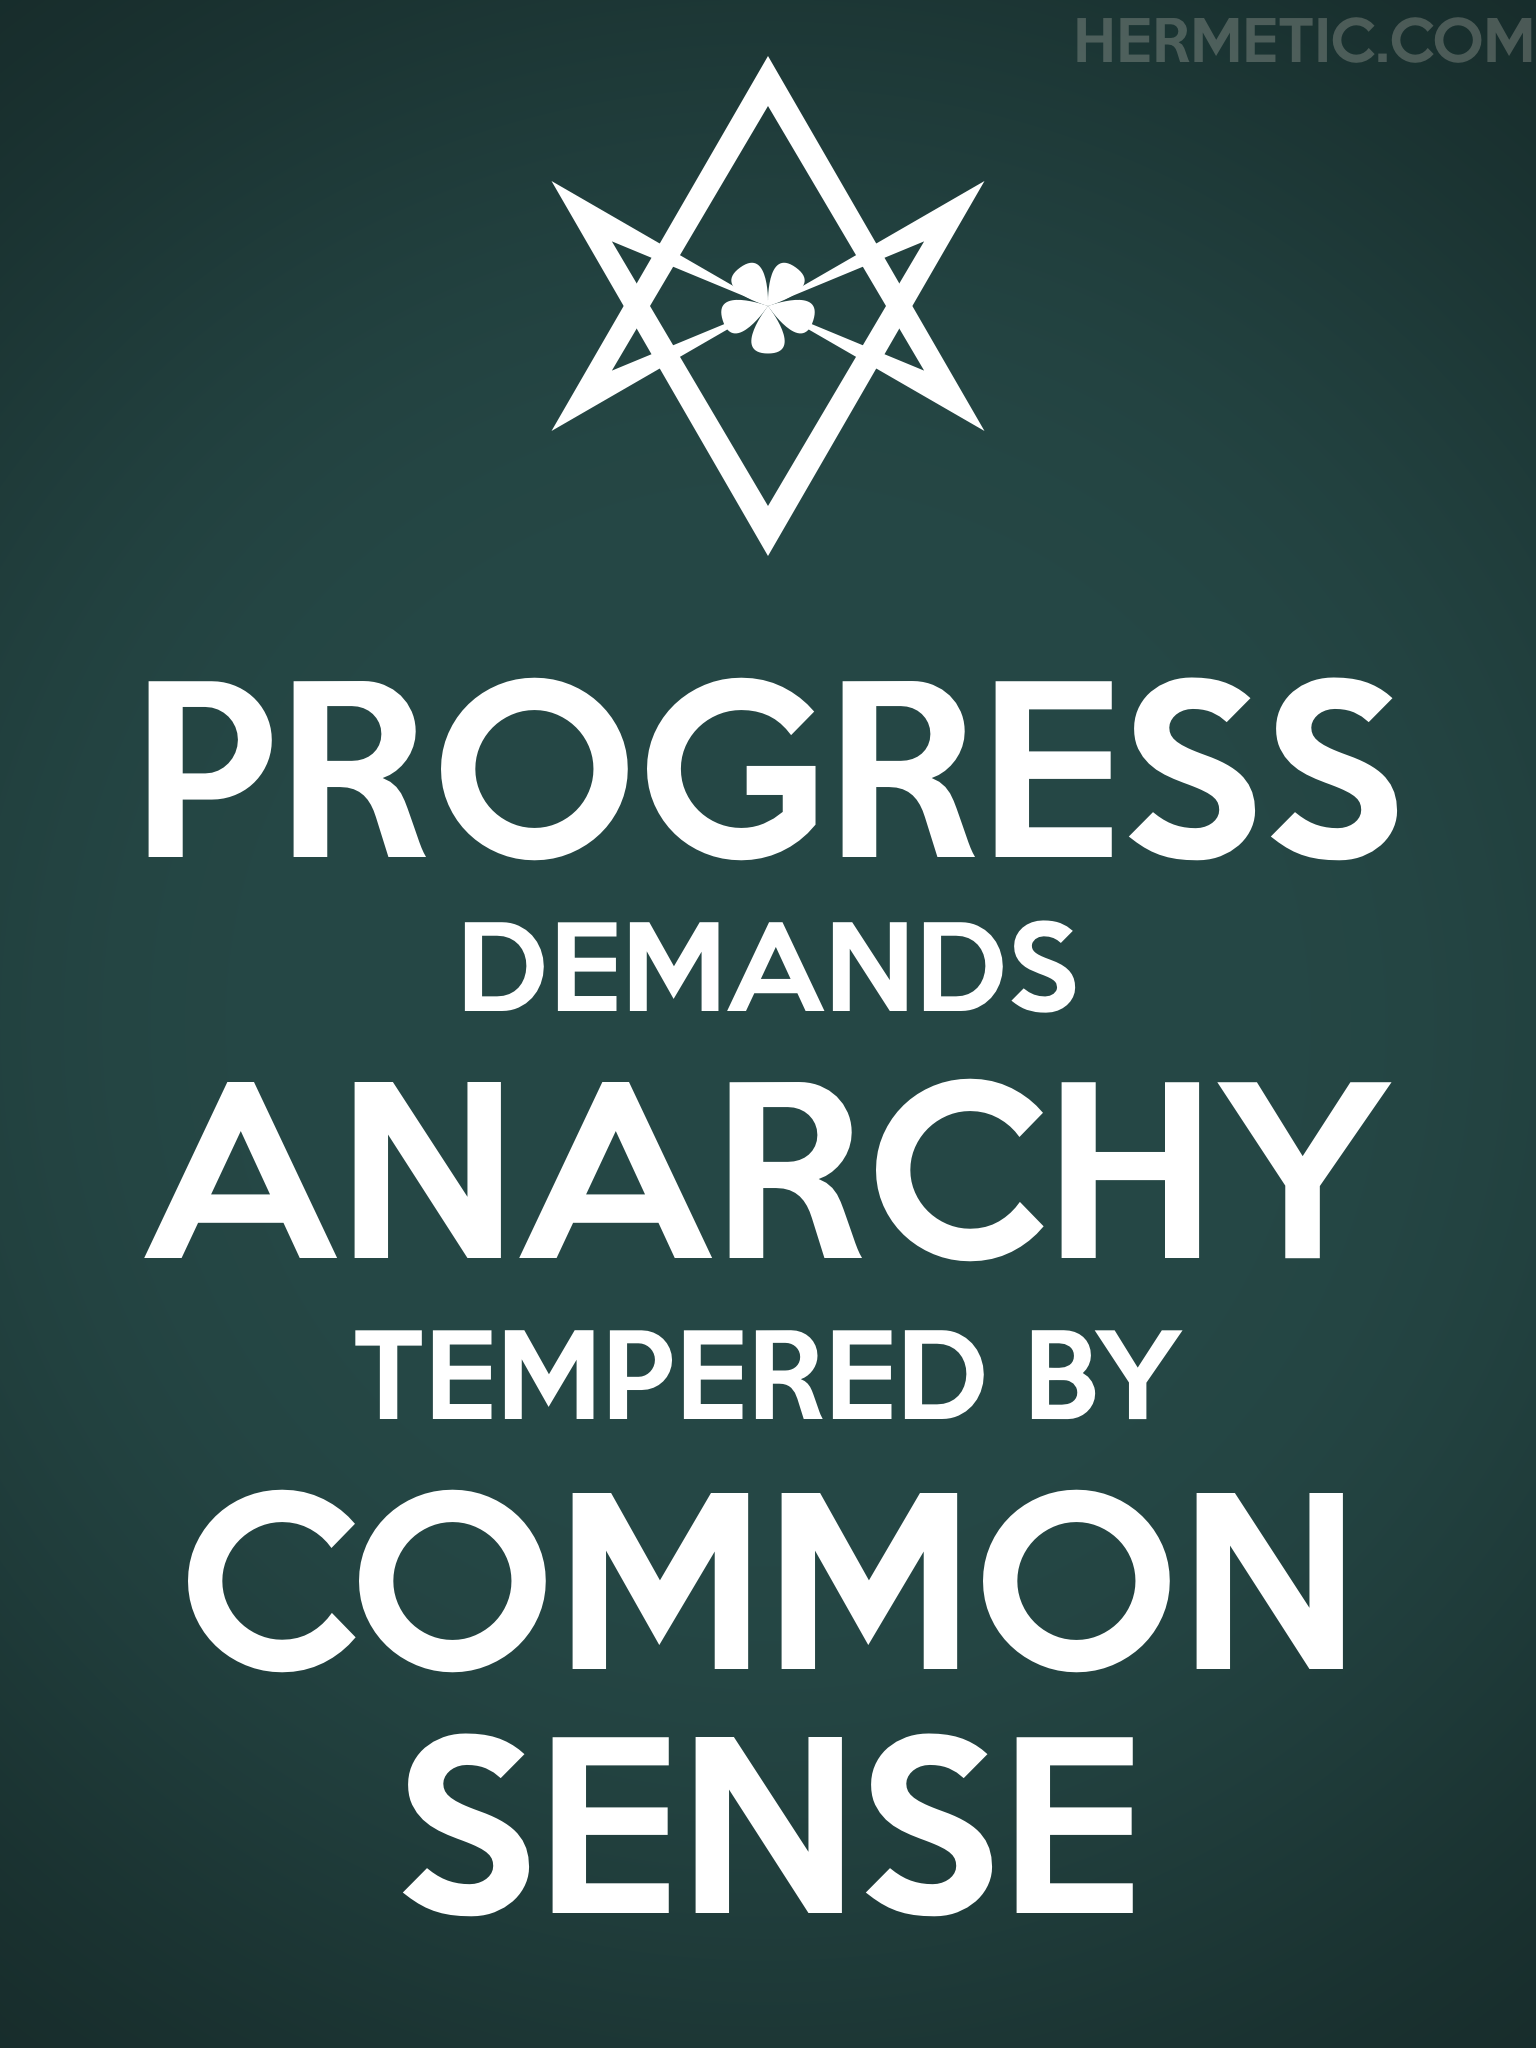 Unicursal PROGRESS ANARCHY COMMON SENSE Propaganda Poster from Hermetic Library Office of the Ministry of Information